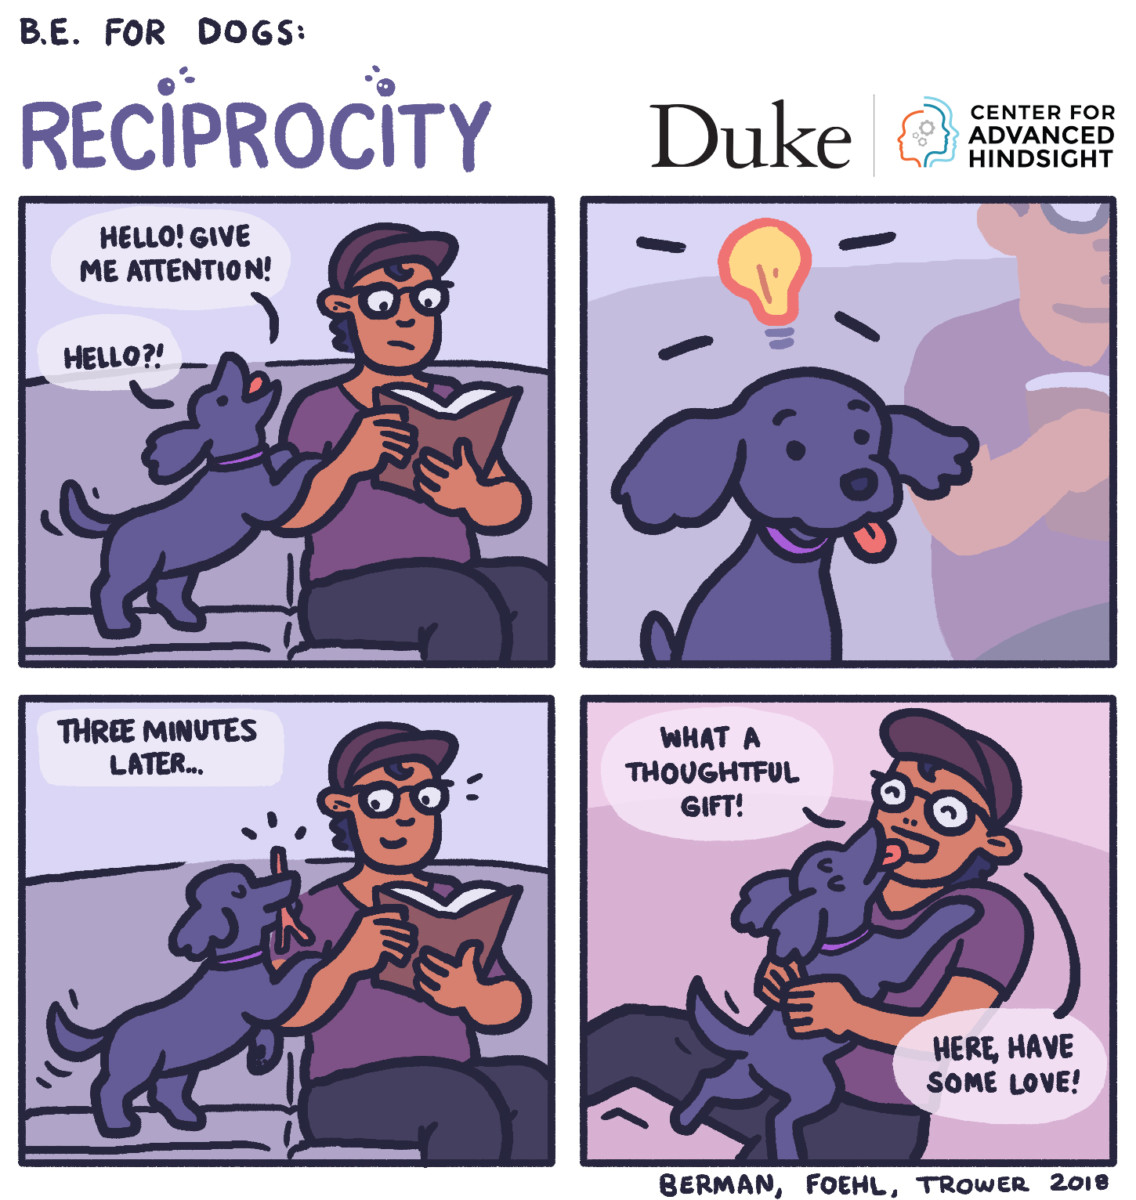 Reciprocity | Behavioral economics | B.E. for dogs